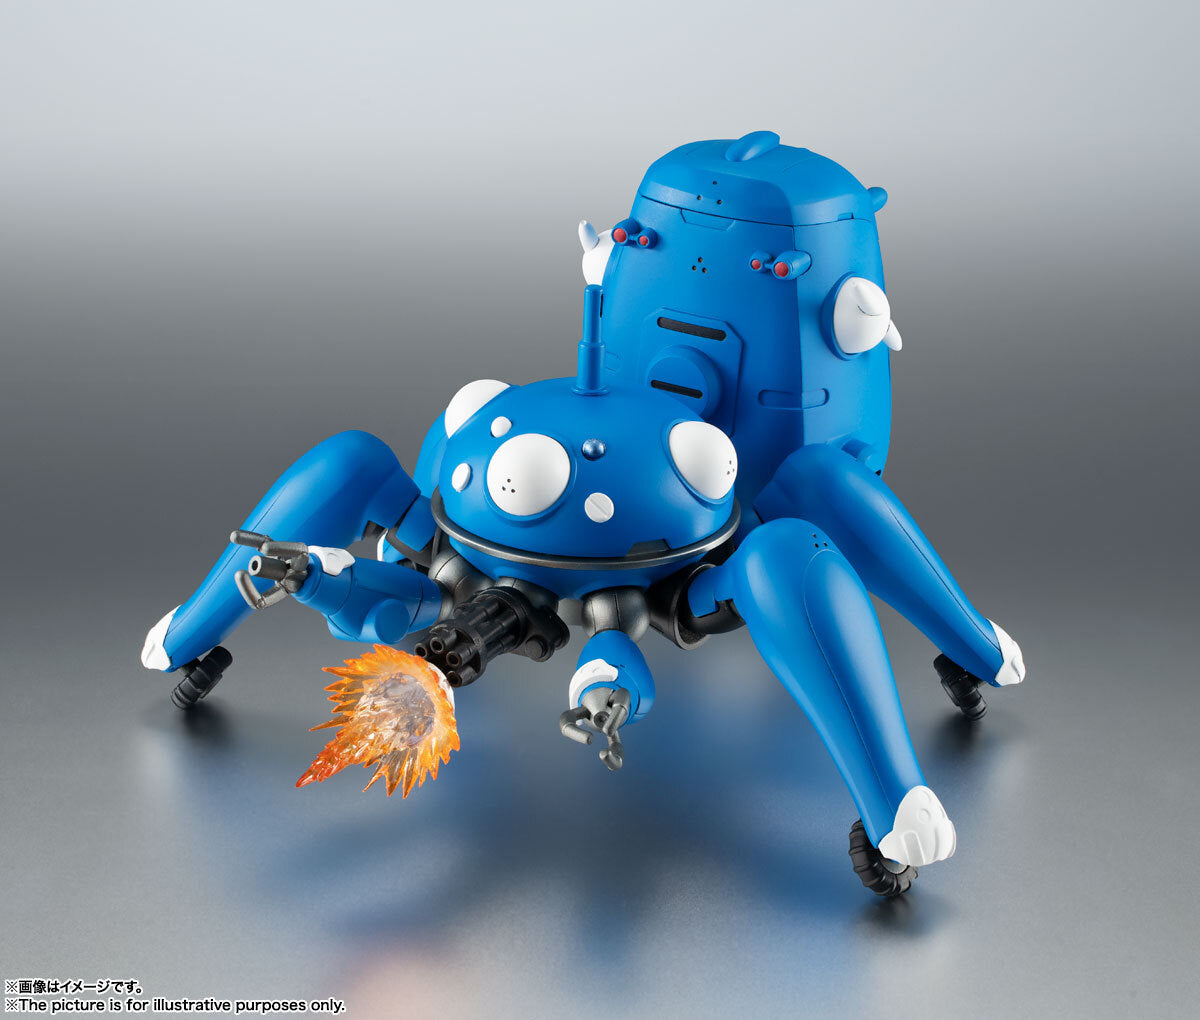 Ghost In The Shell S A C Robot Spirits Tachikoma Animezing Toys And Collectibles